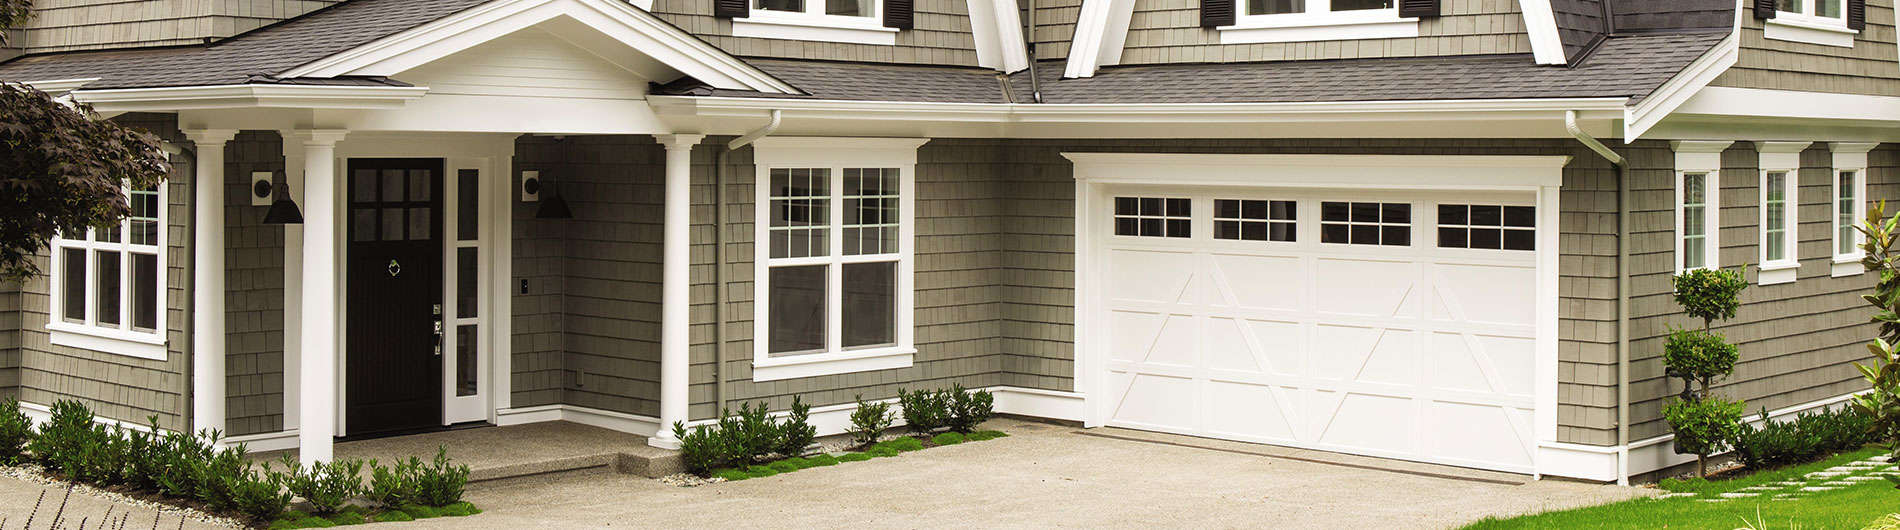 9700-CH-Garage-Door-Charleston-White-24WindowSquare.jpg